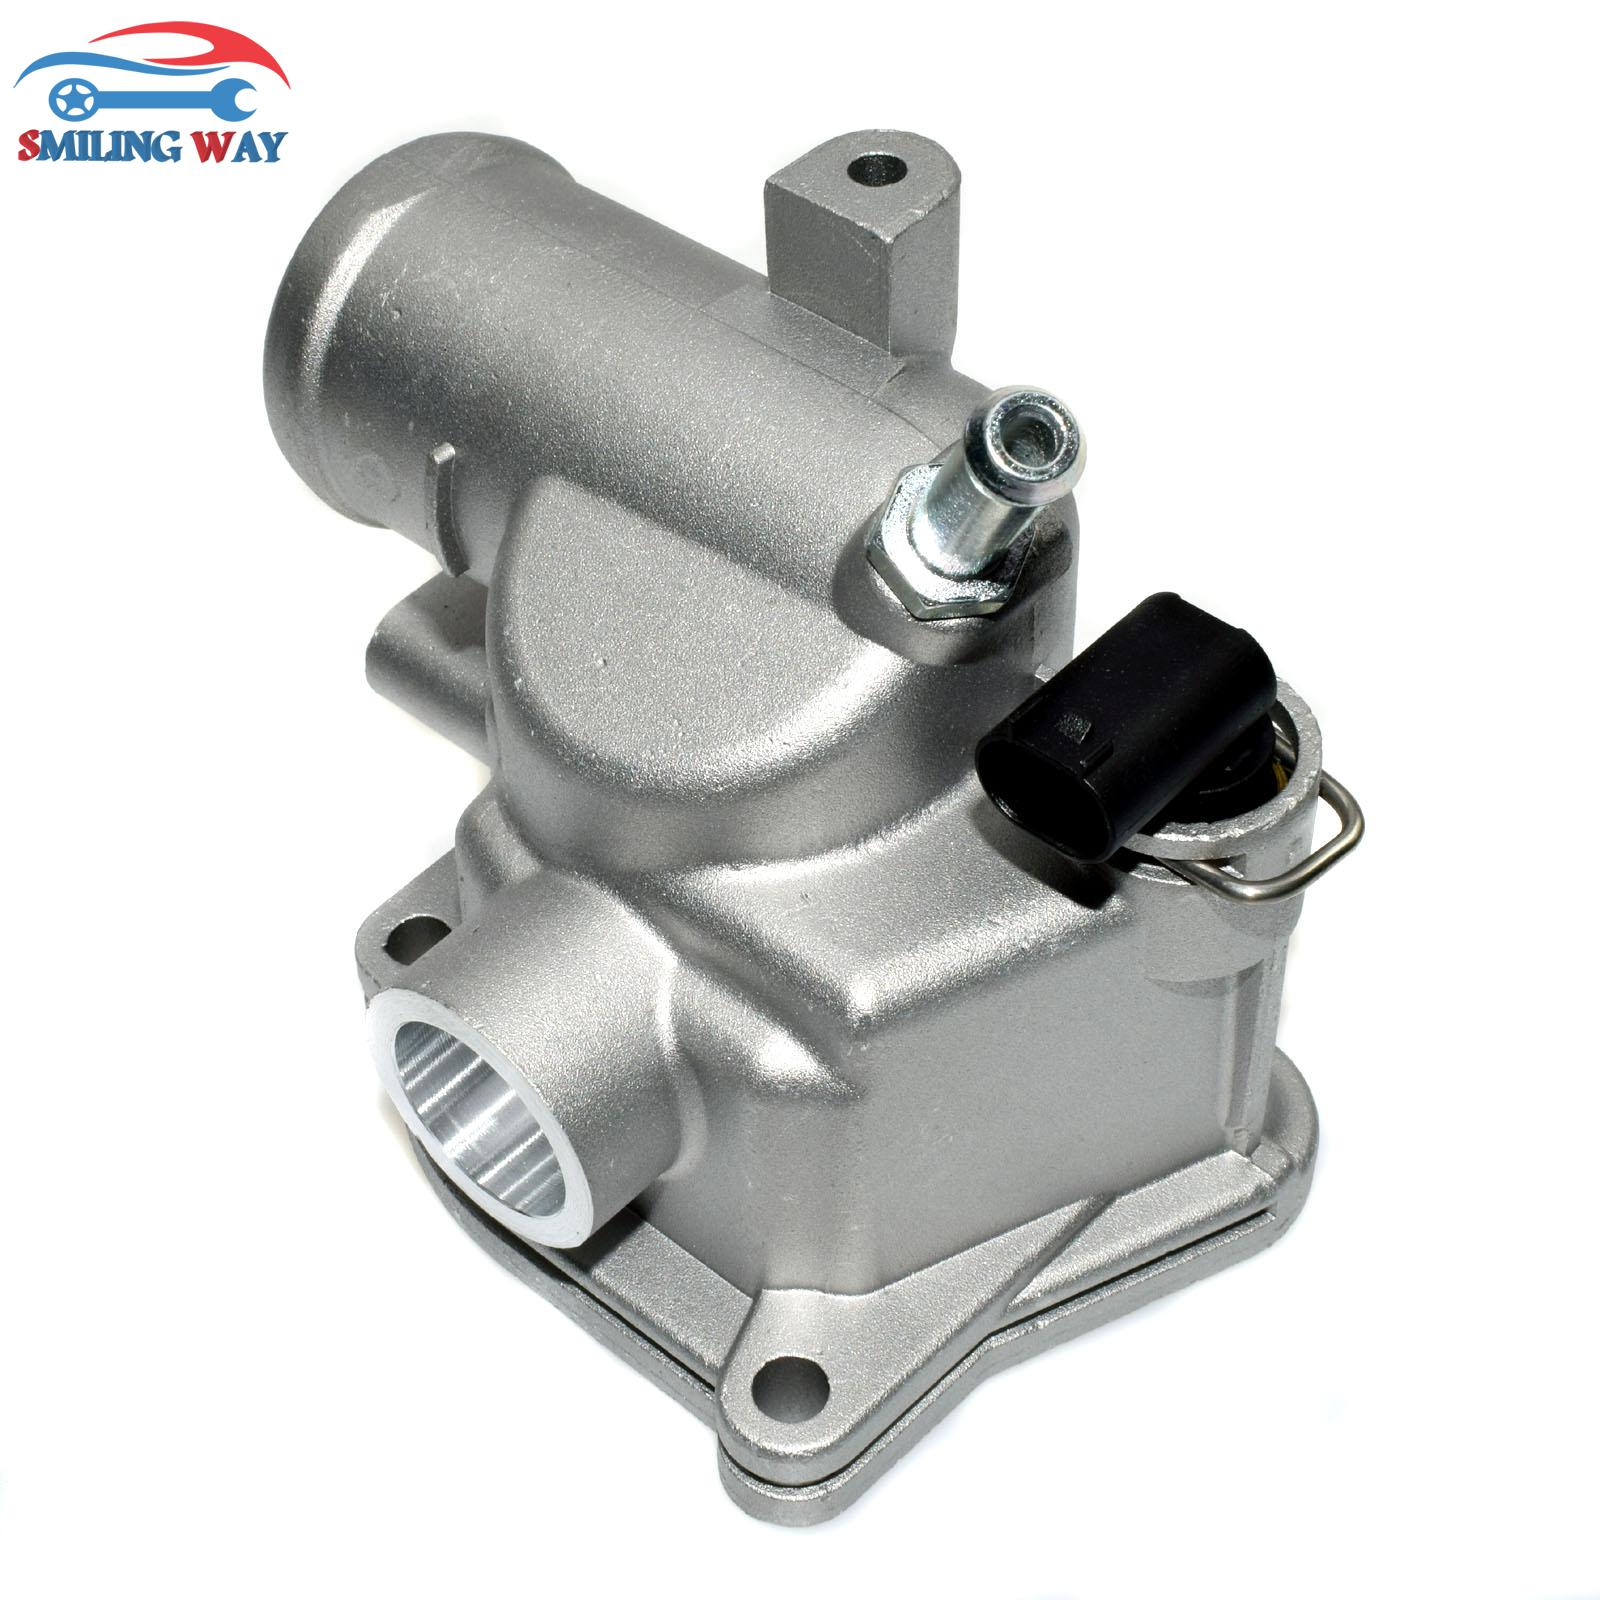 small resolution of smiling way engine coolant thermostat for mercedes benz w202 s202 c class e class c200 e200 c36 amg oe 6112000015 6112030075